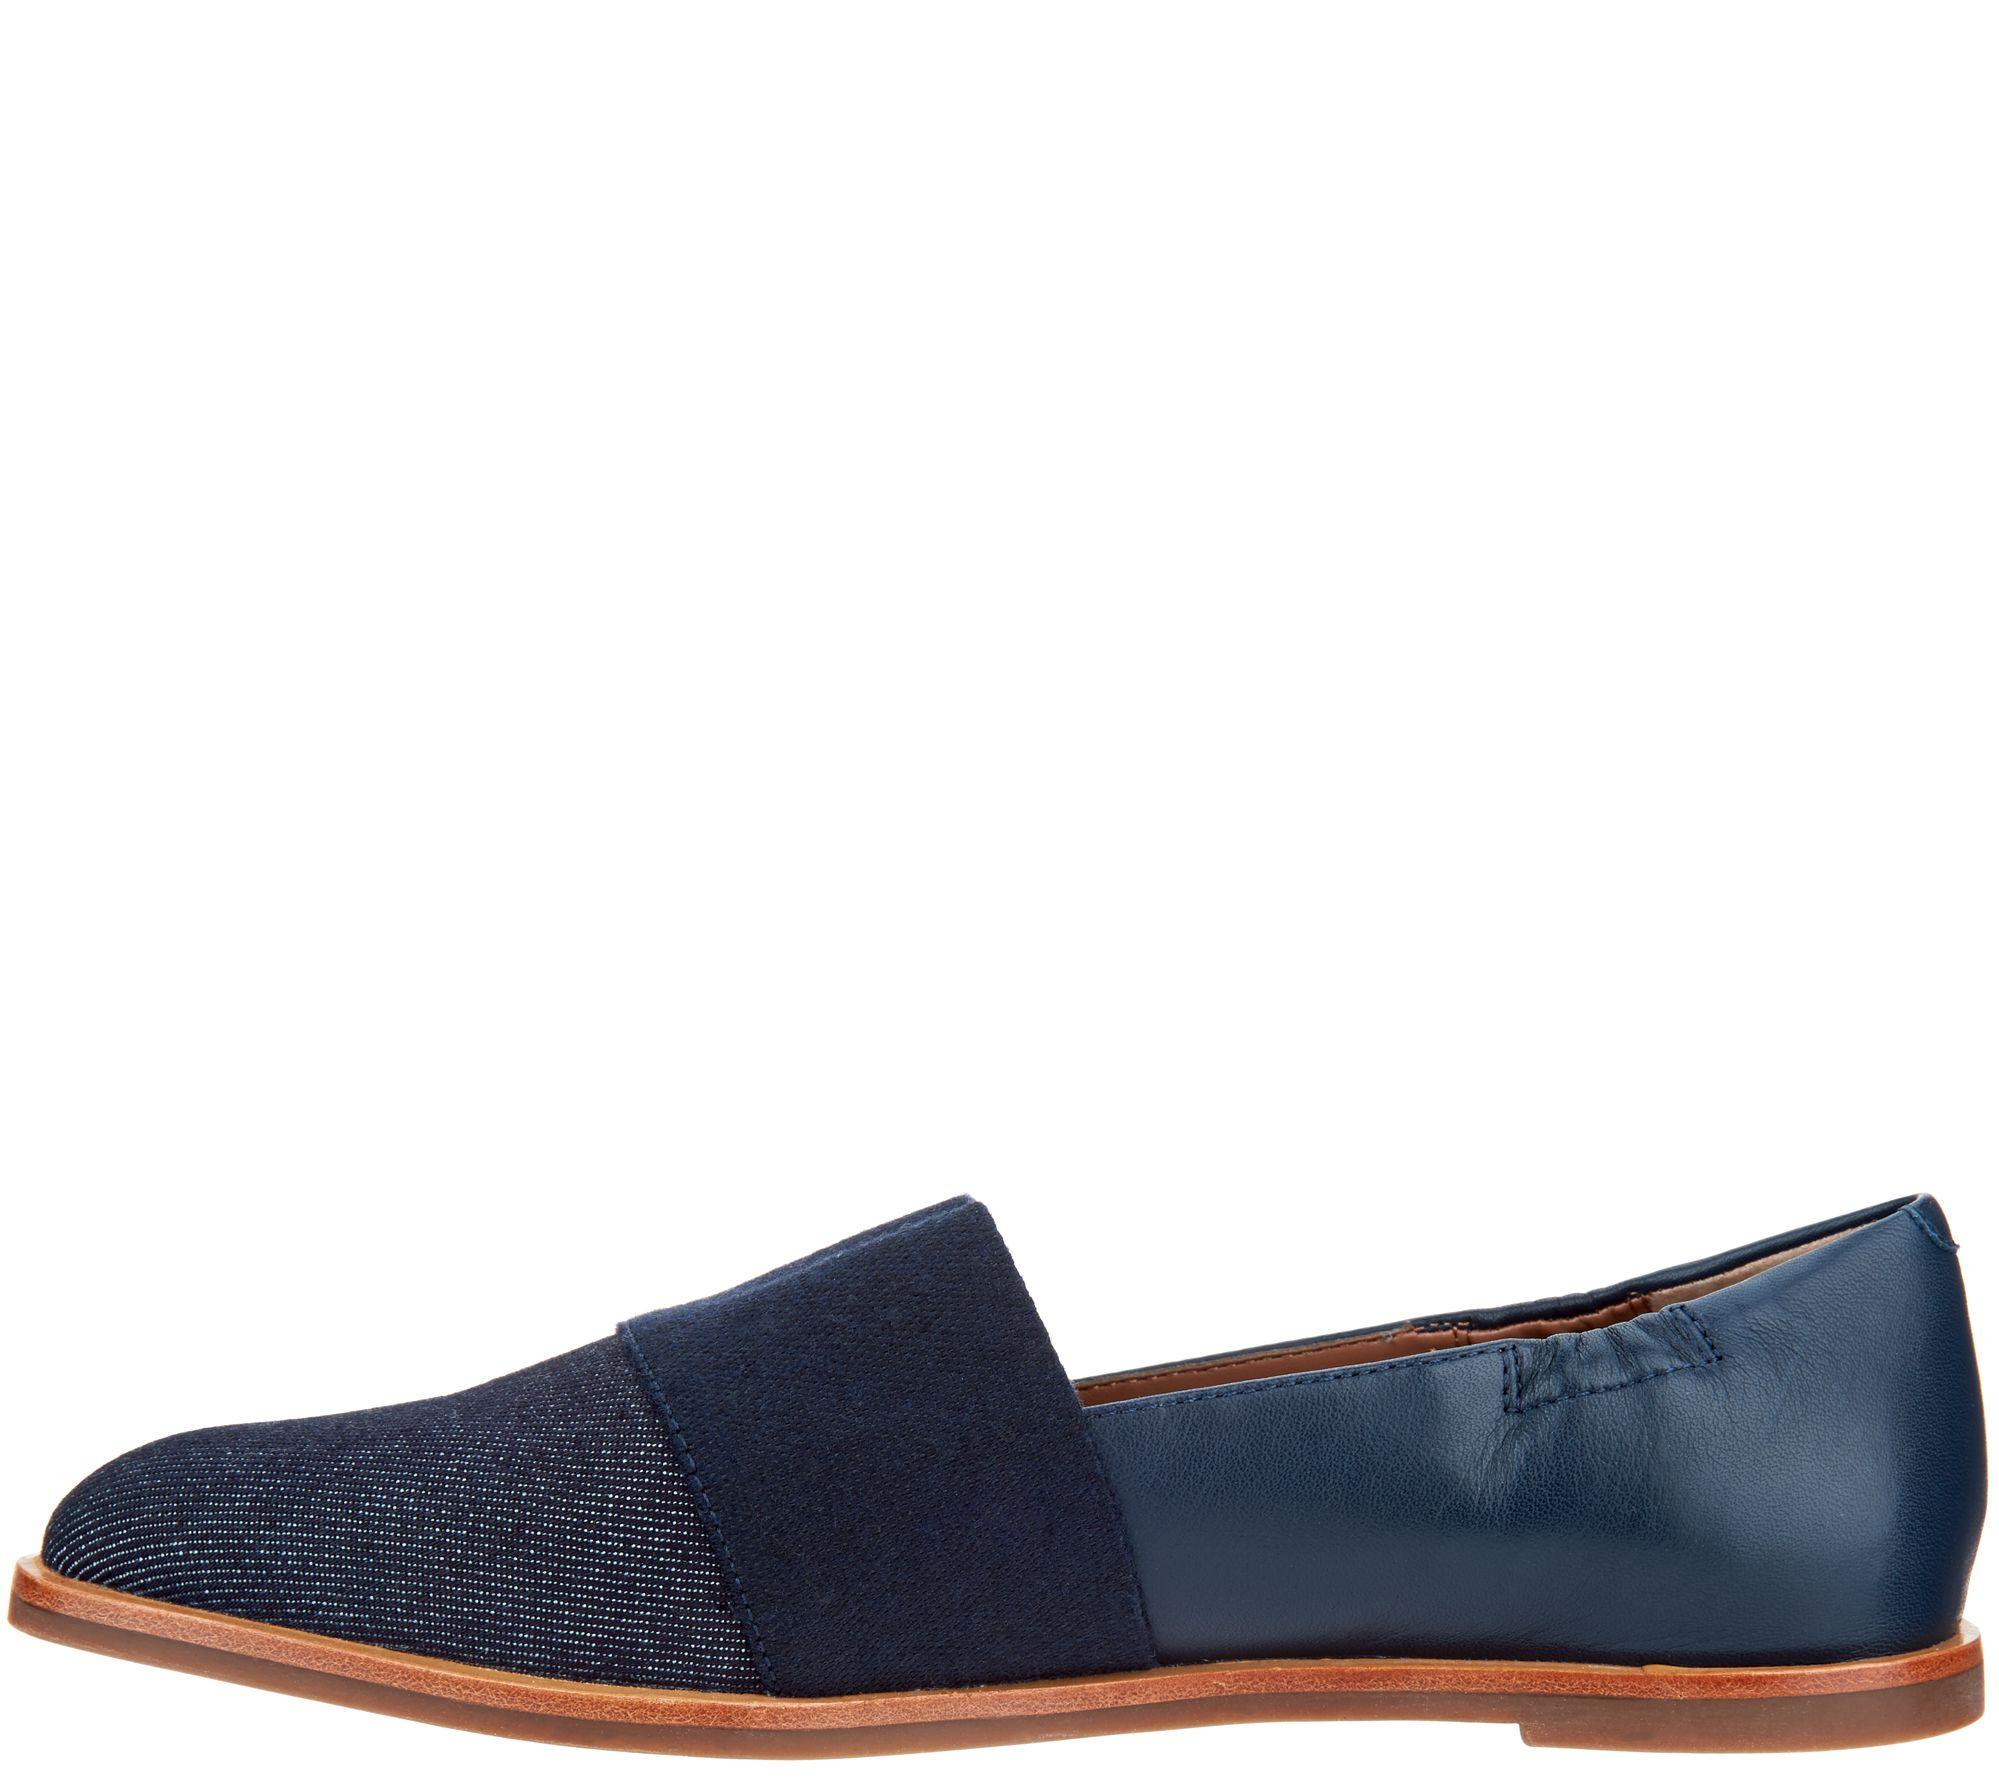 leather and cotton Eletric Love denim loafers Blue Bird Shoes WKMLkKKqSW